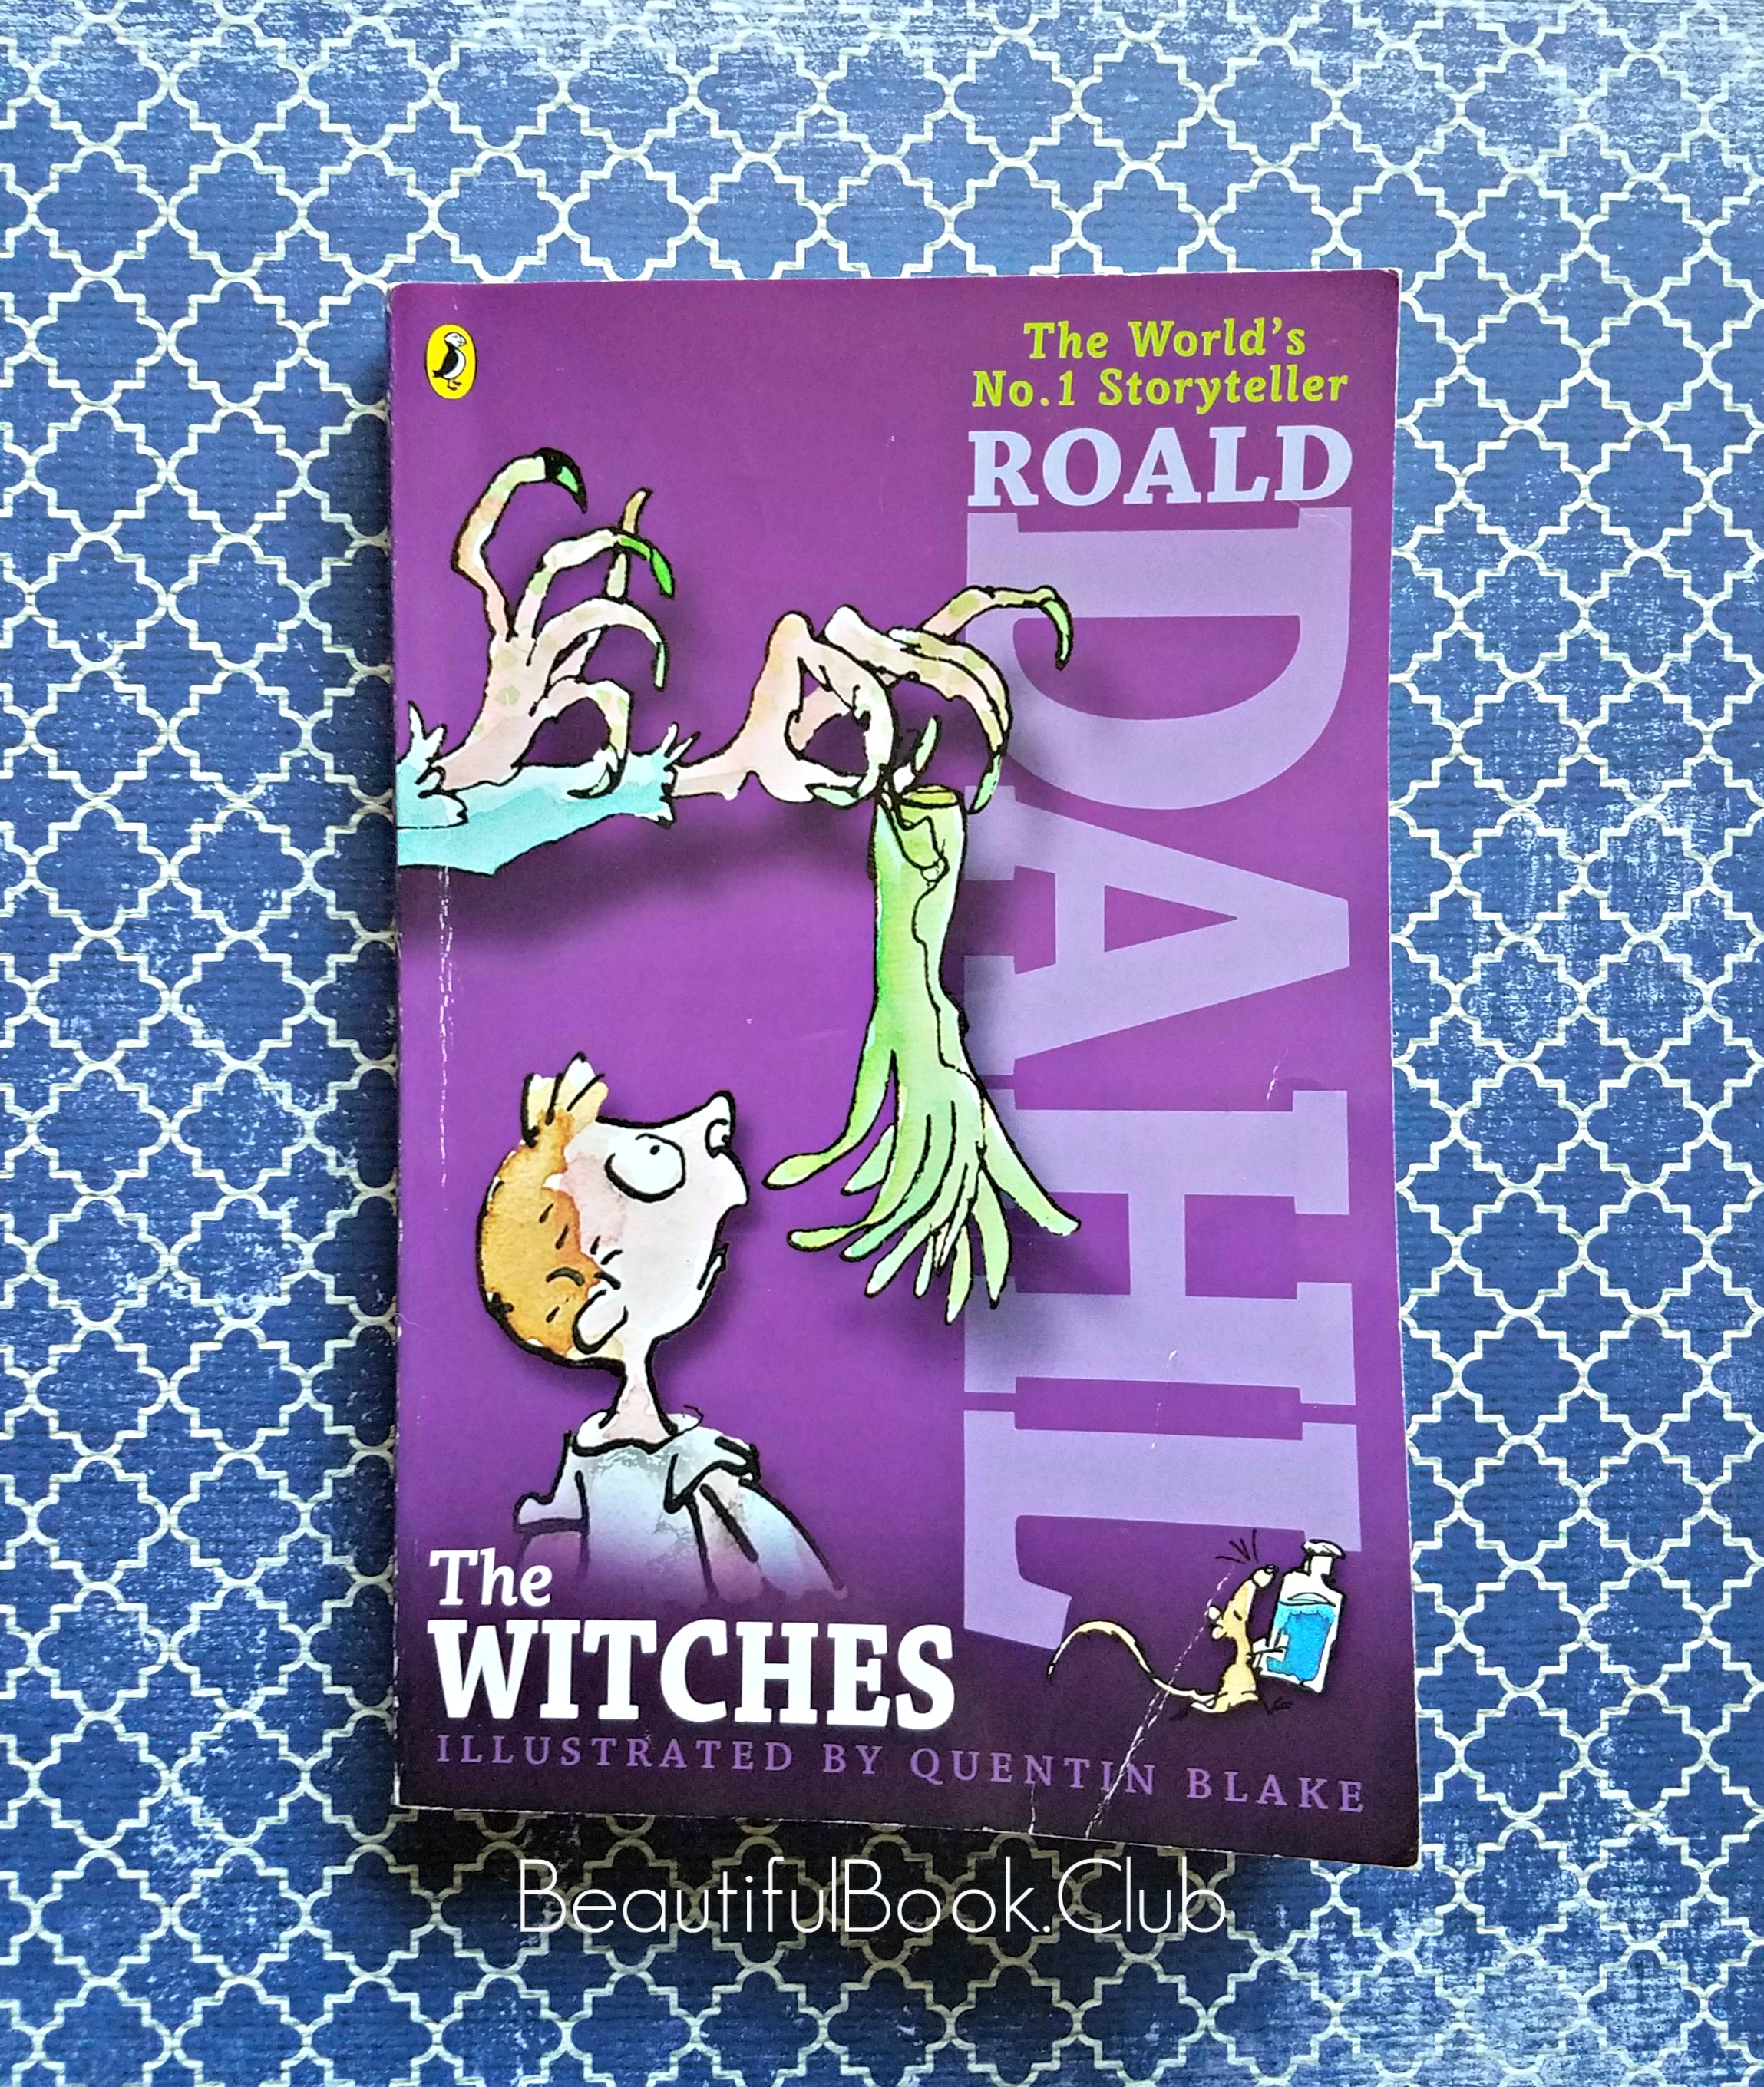 Roald Dahl The Witches book cover